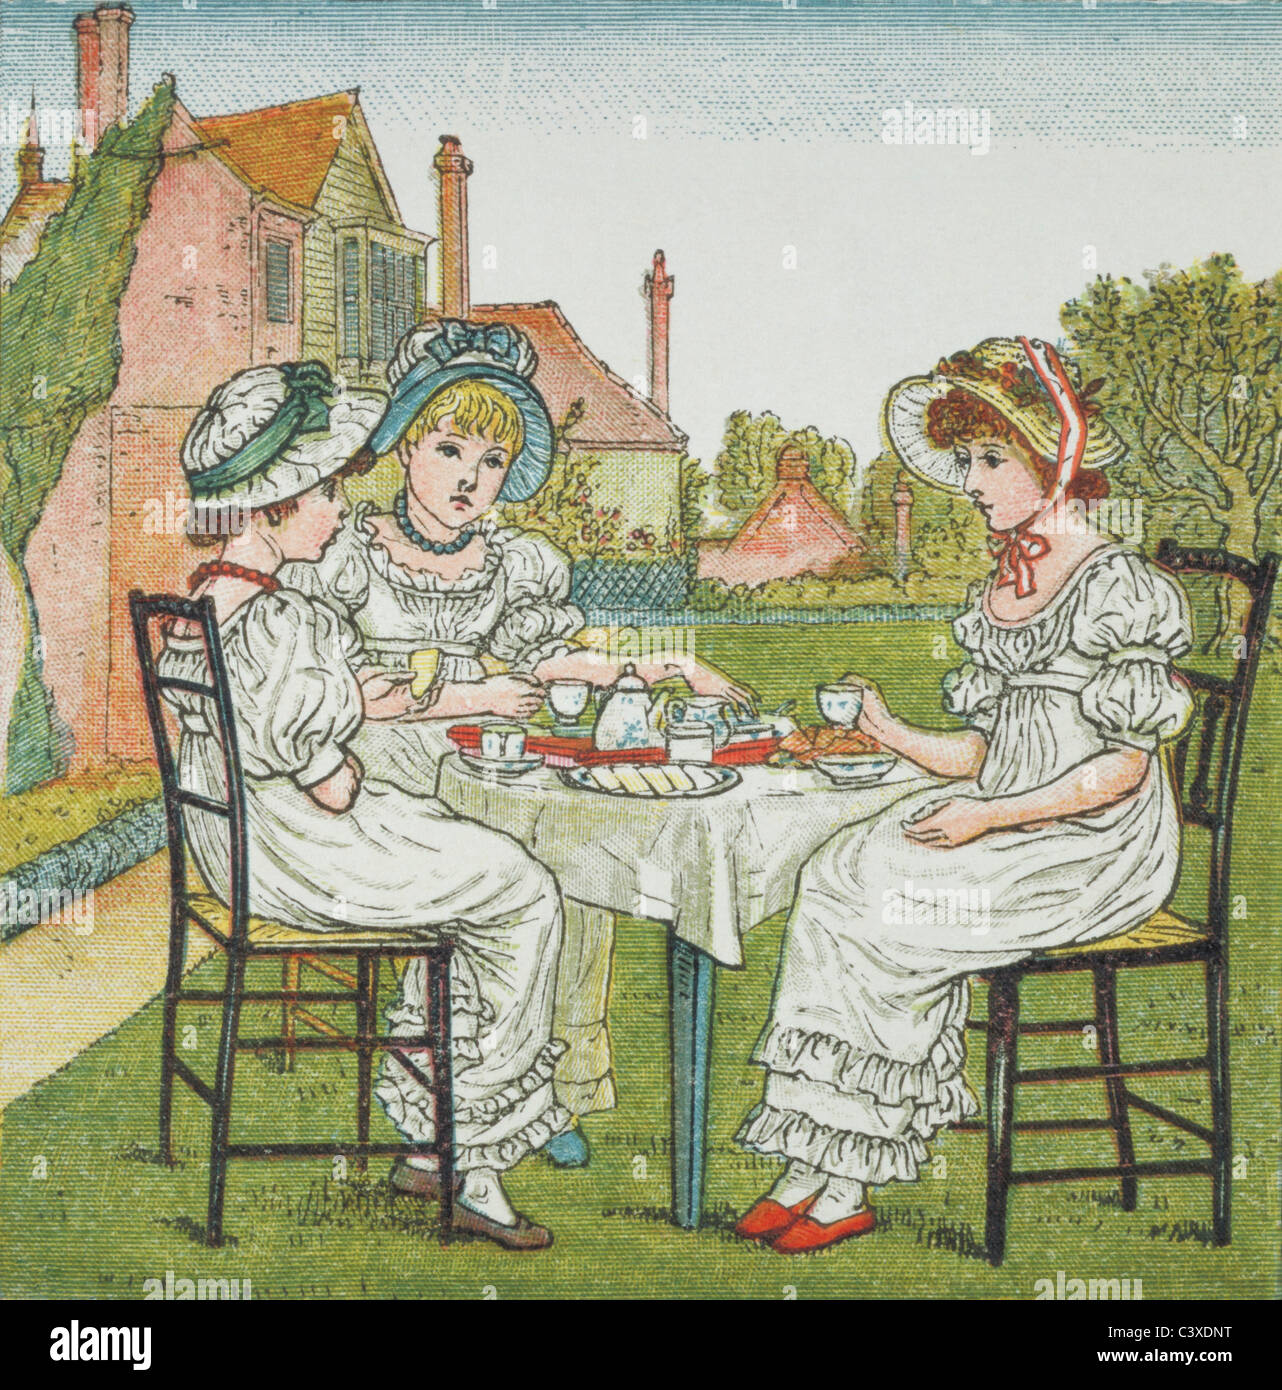 Tea Party, illustration par Kate Greenaway. Londres, Angleterre, fin du 19e siècle Banque D'Images